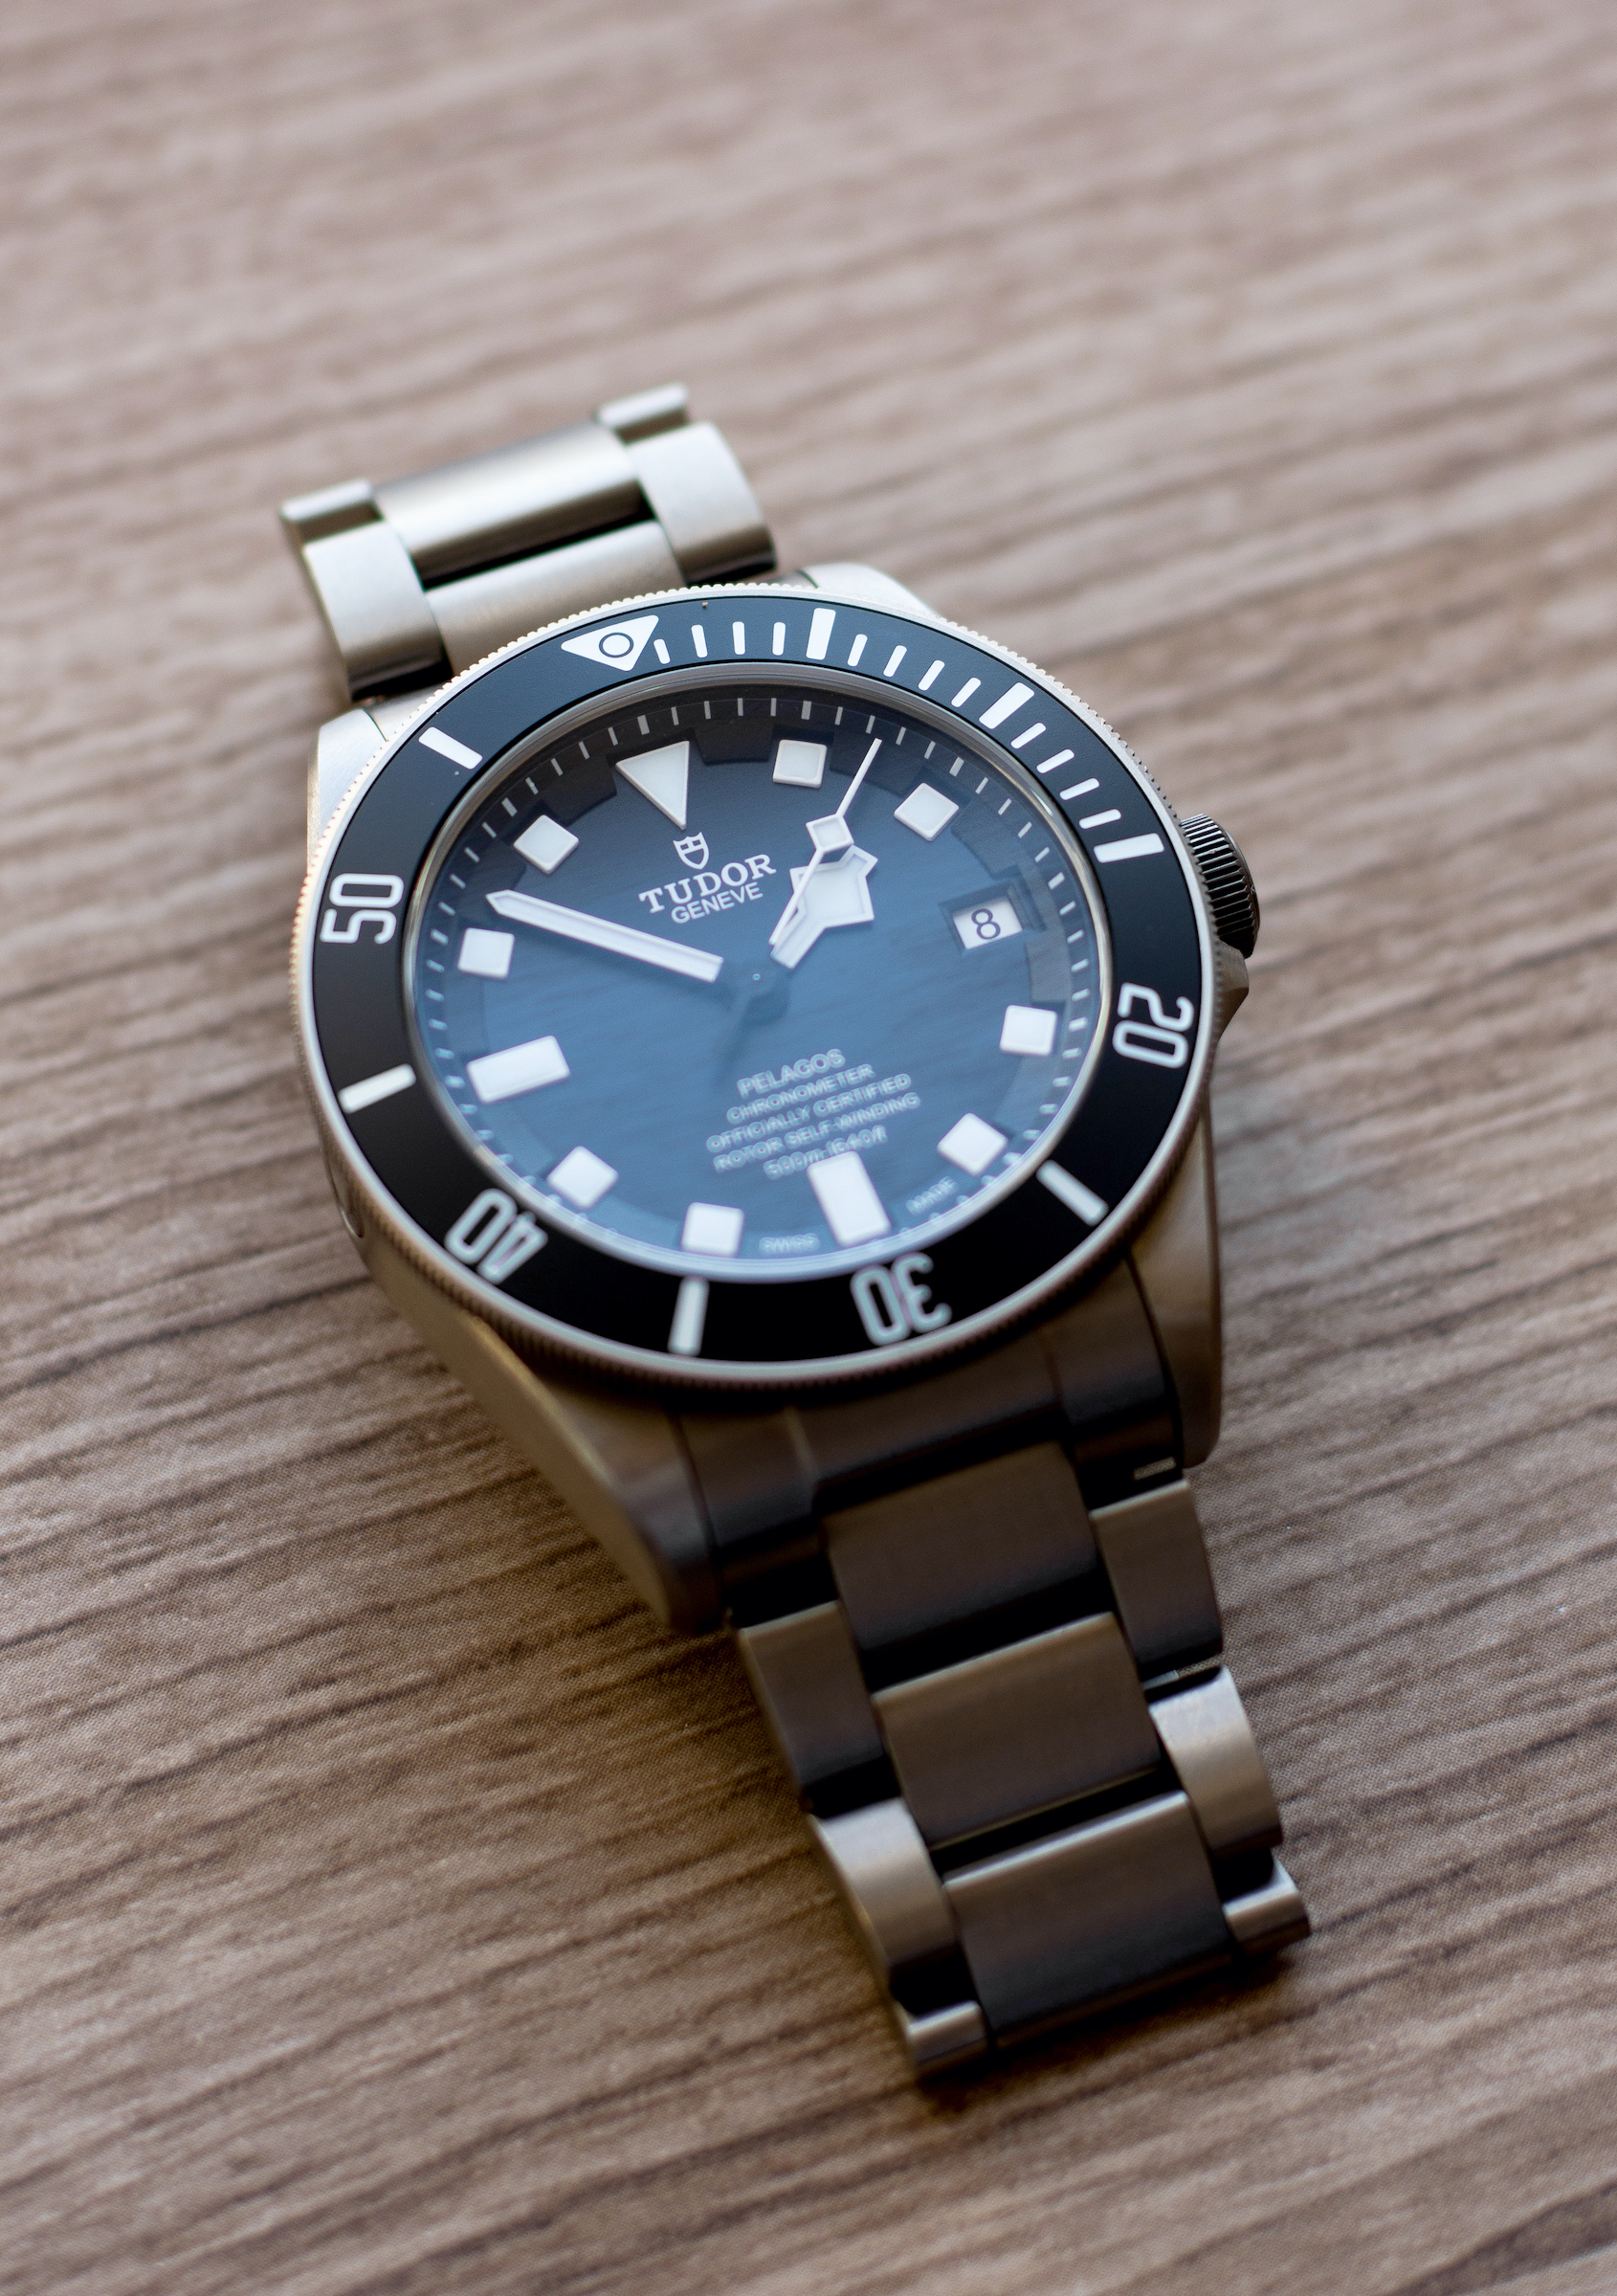 Rolex Submariner vs Tudor Pelagos